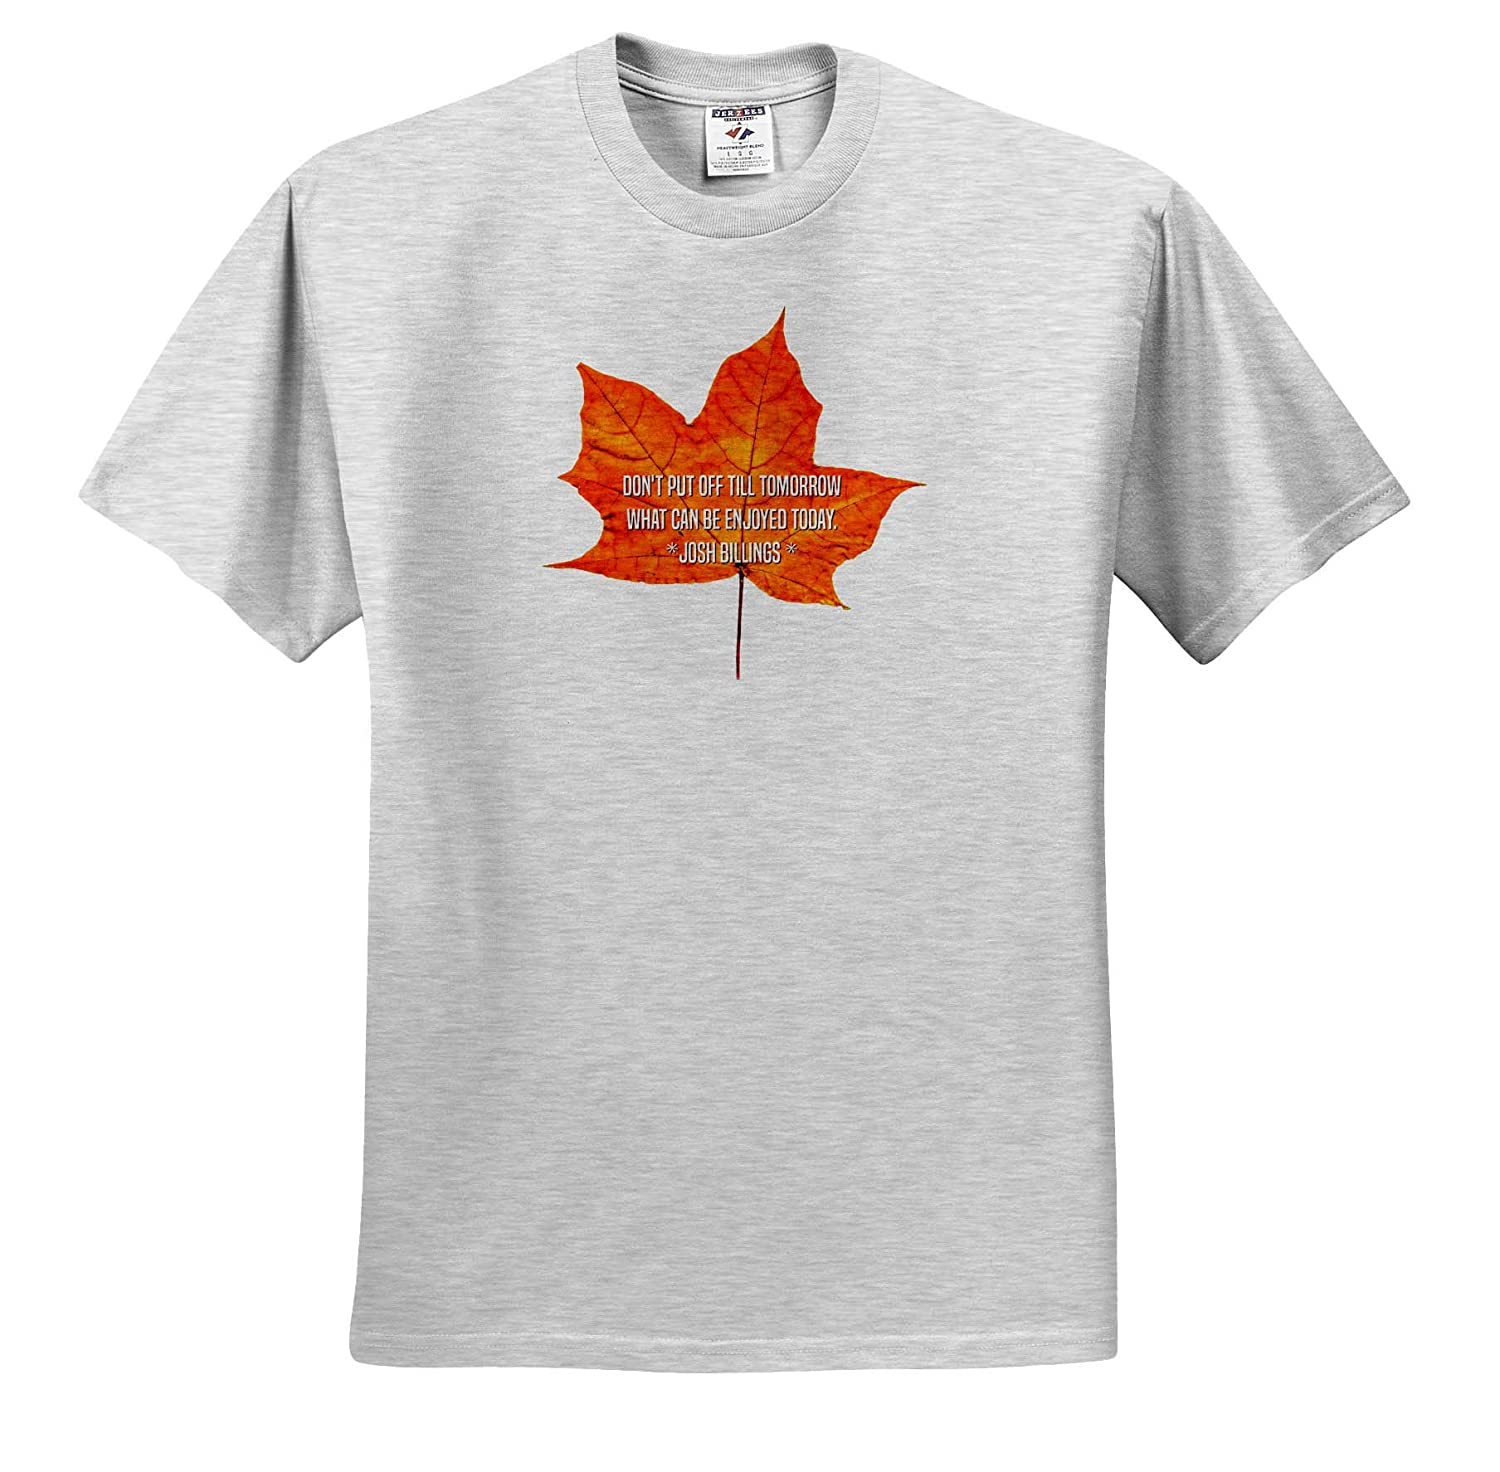 Maple Leaf and The Text Do not Put Off Till Tomorrow What You can Quotes Josh Billing - T-Shirts 3dRose Alexis Design